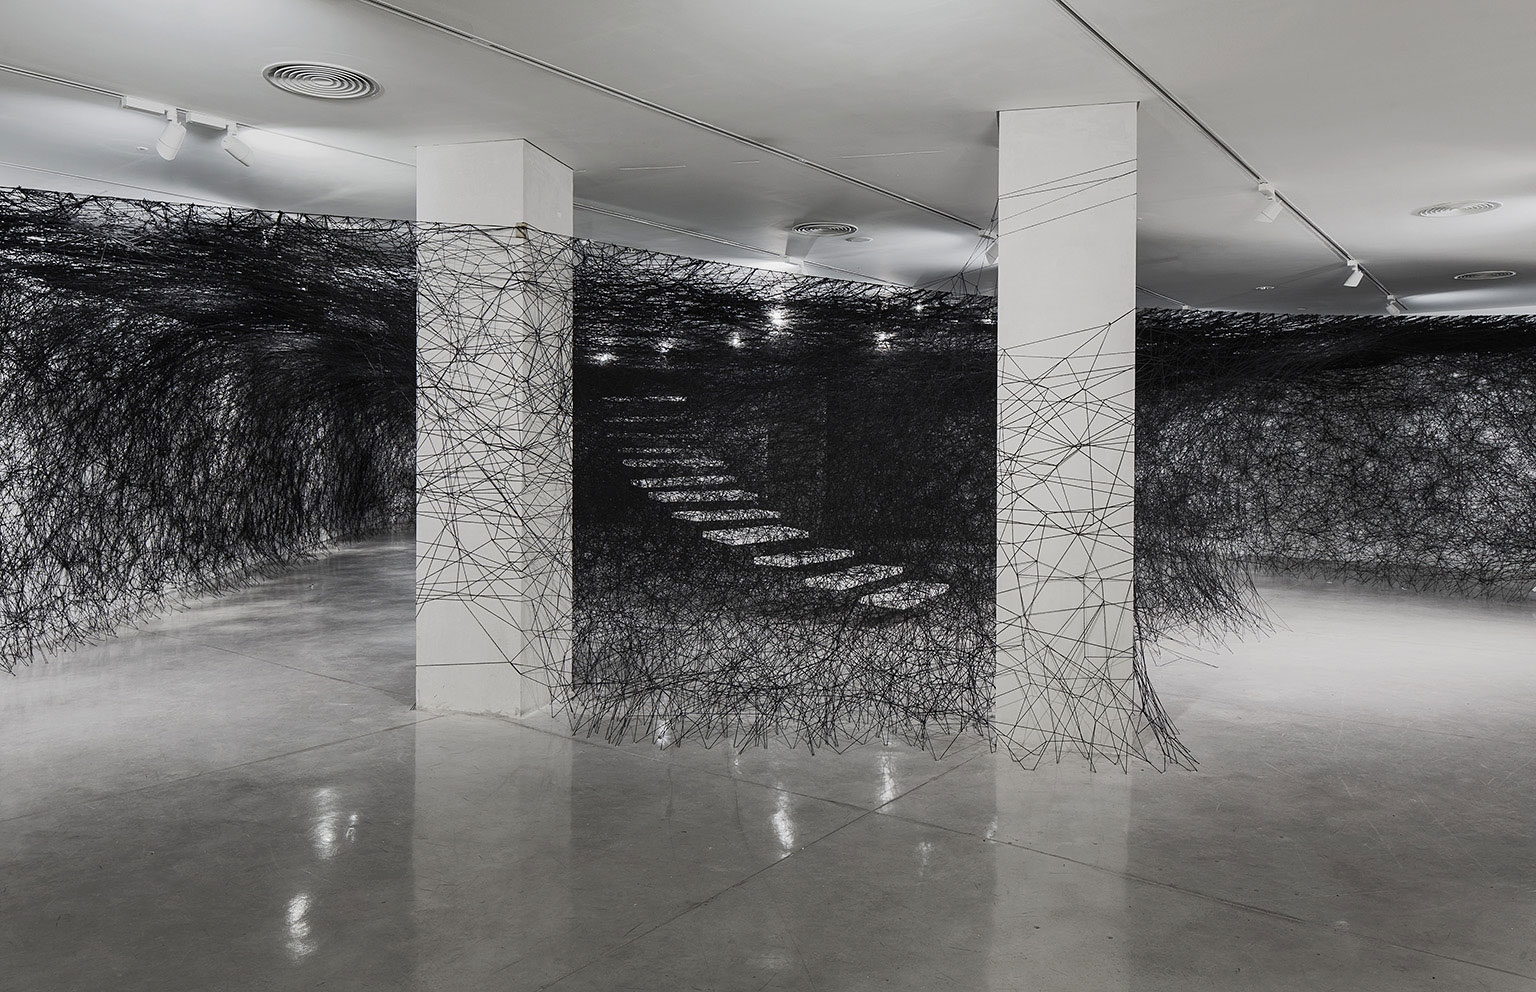 Installation-Photograph-3,-Piranesi-Shiota--Prisons-of-the-Imagination-at-the-Tel-Aviv-Museum-of-Art